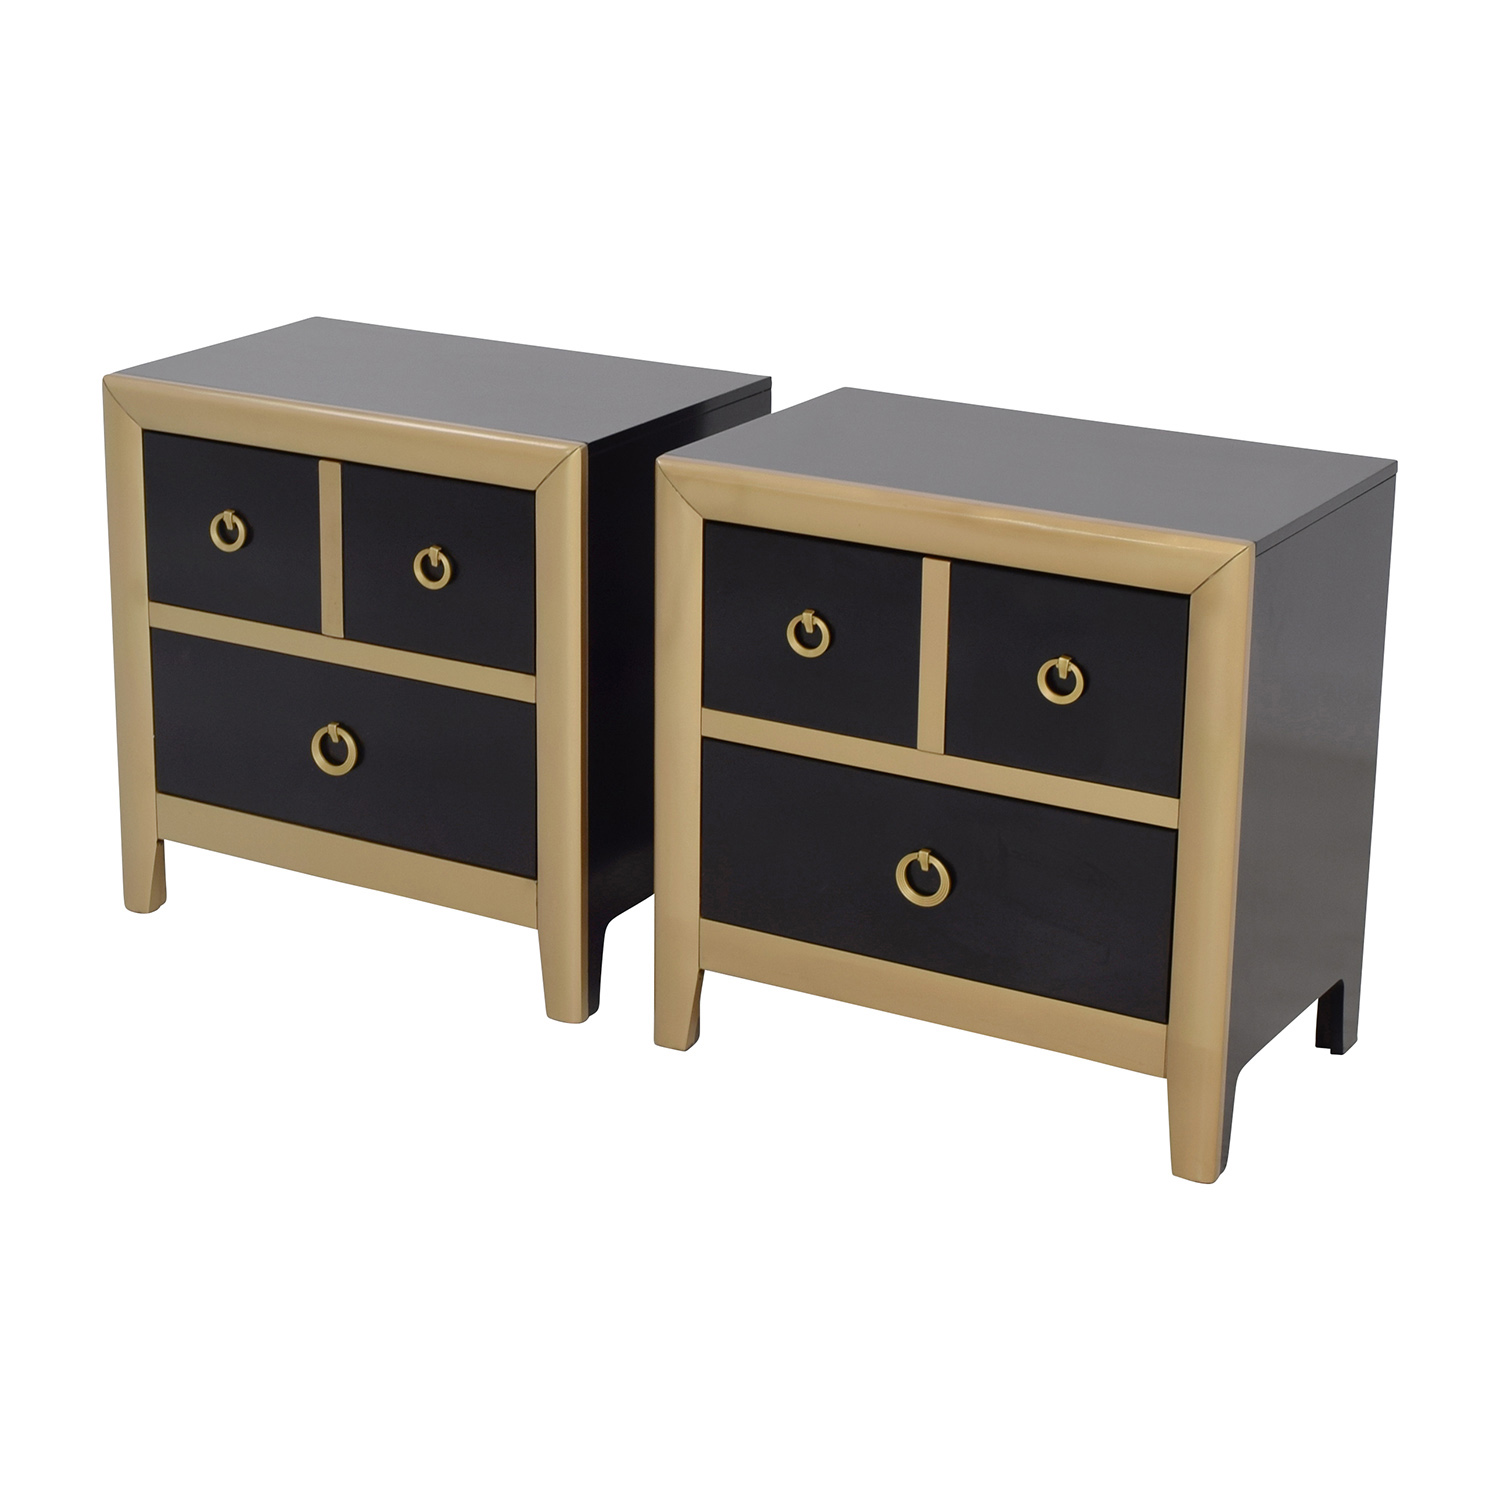 Coaster Furniture Coaster Furniture Black and Gold Two-Drawer Nightstands nyc